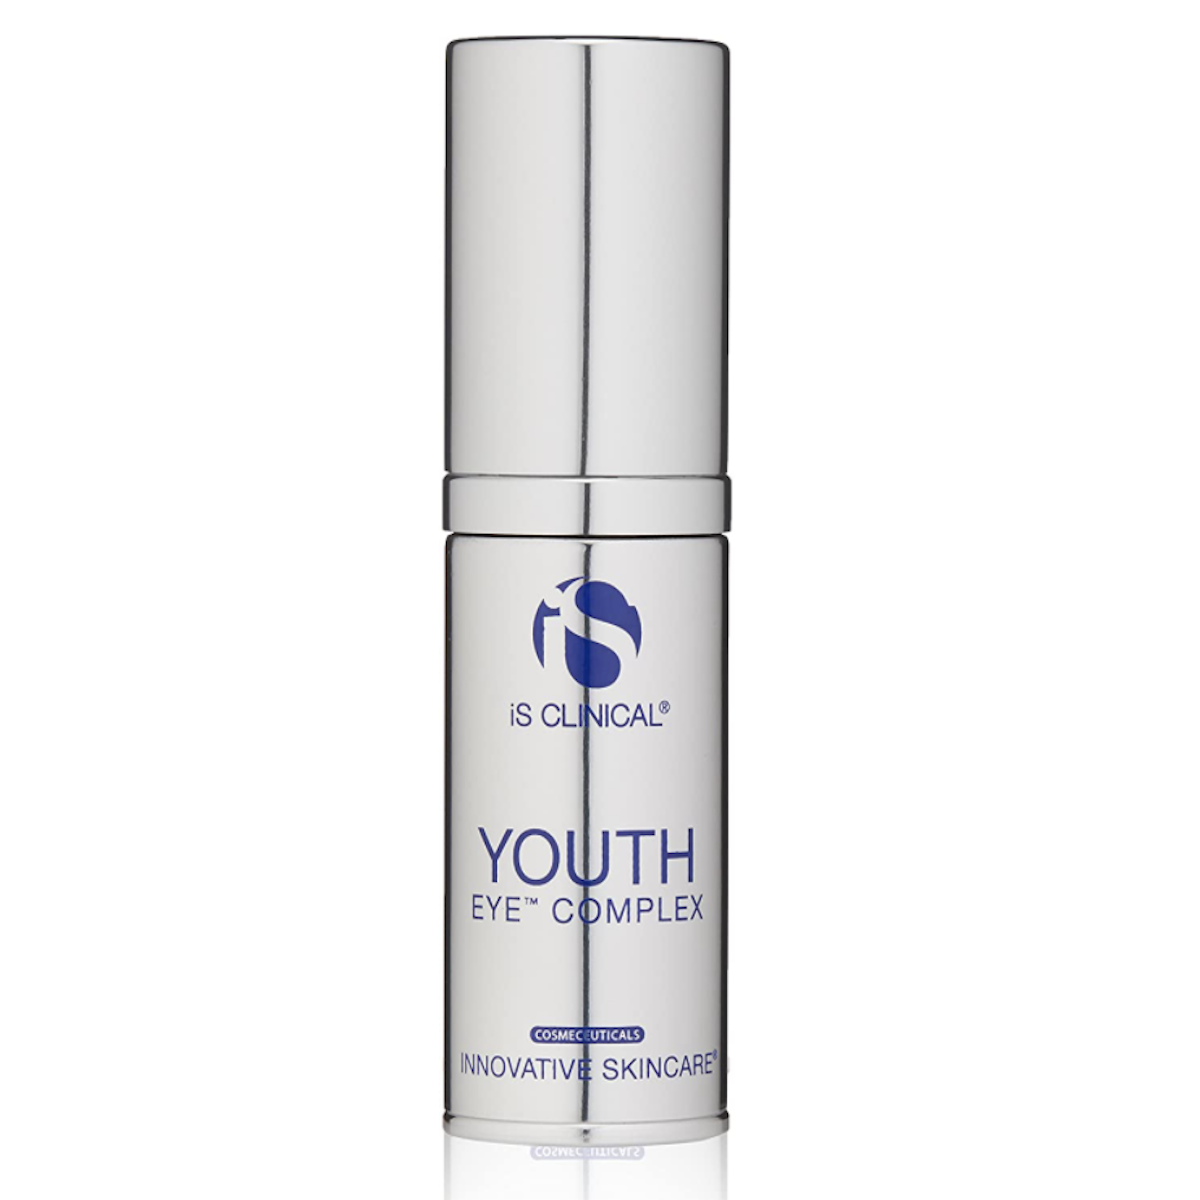 iS Clinical Youth Eye Complex pump